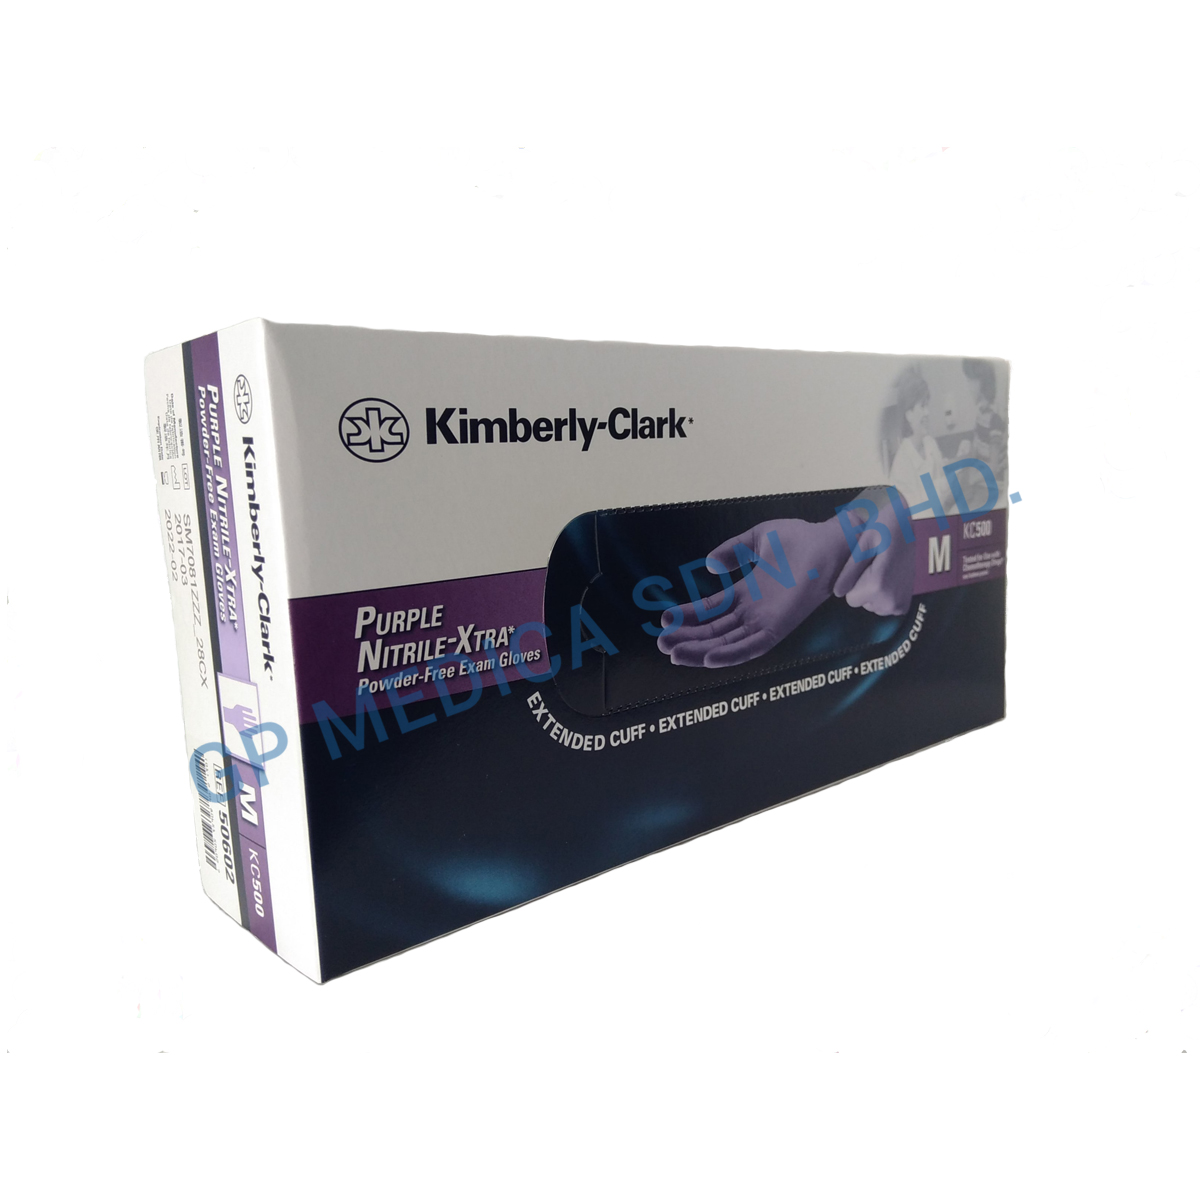 Kimberly Clark Purple Nitrile-1